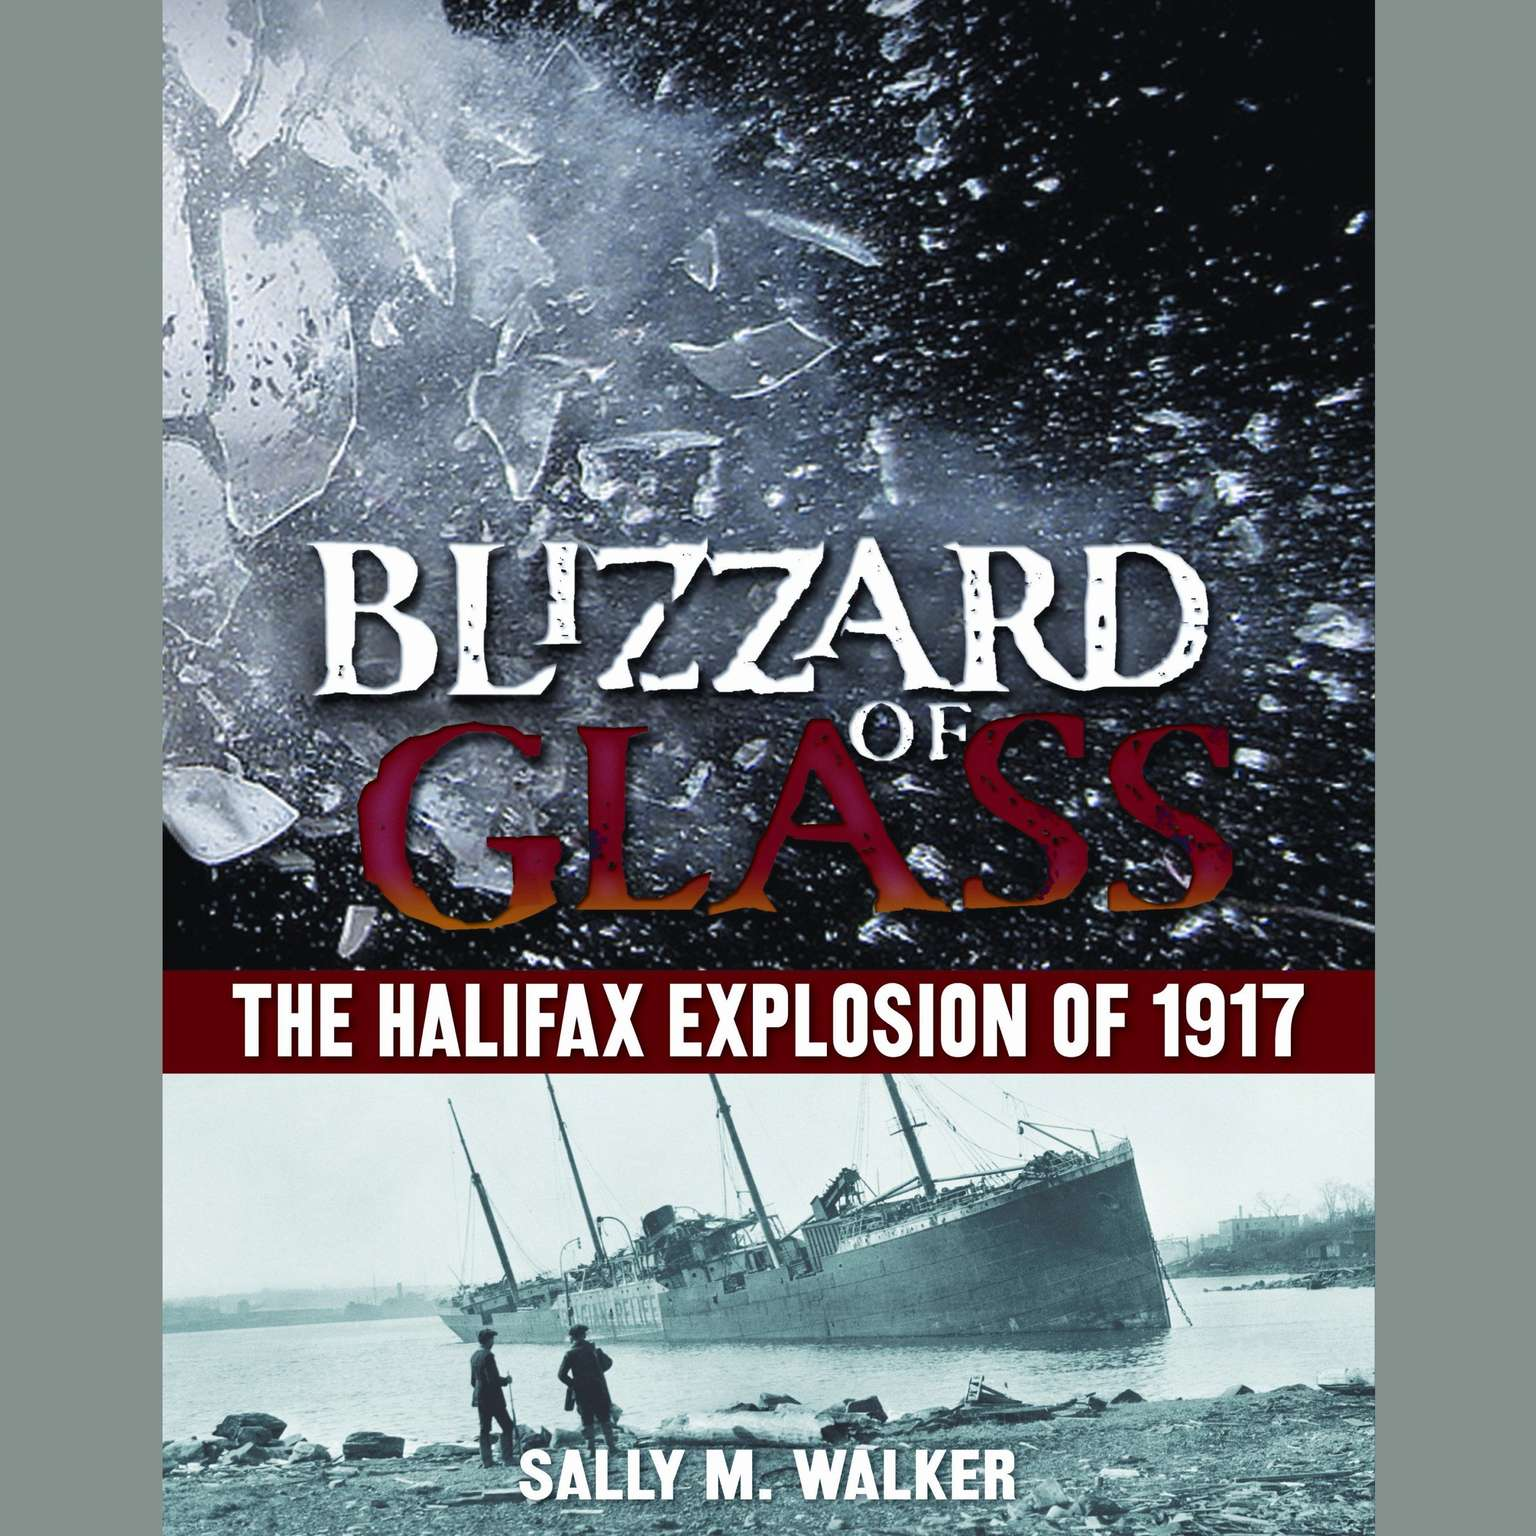 Blizzard of Glass: The Halifax Explosion of 1917 Audiobook